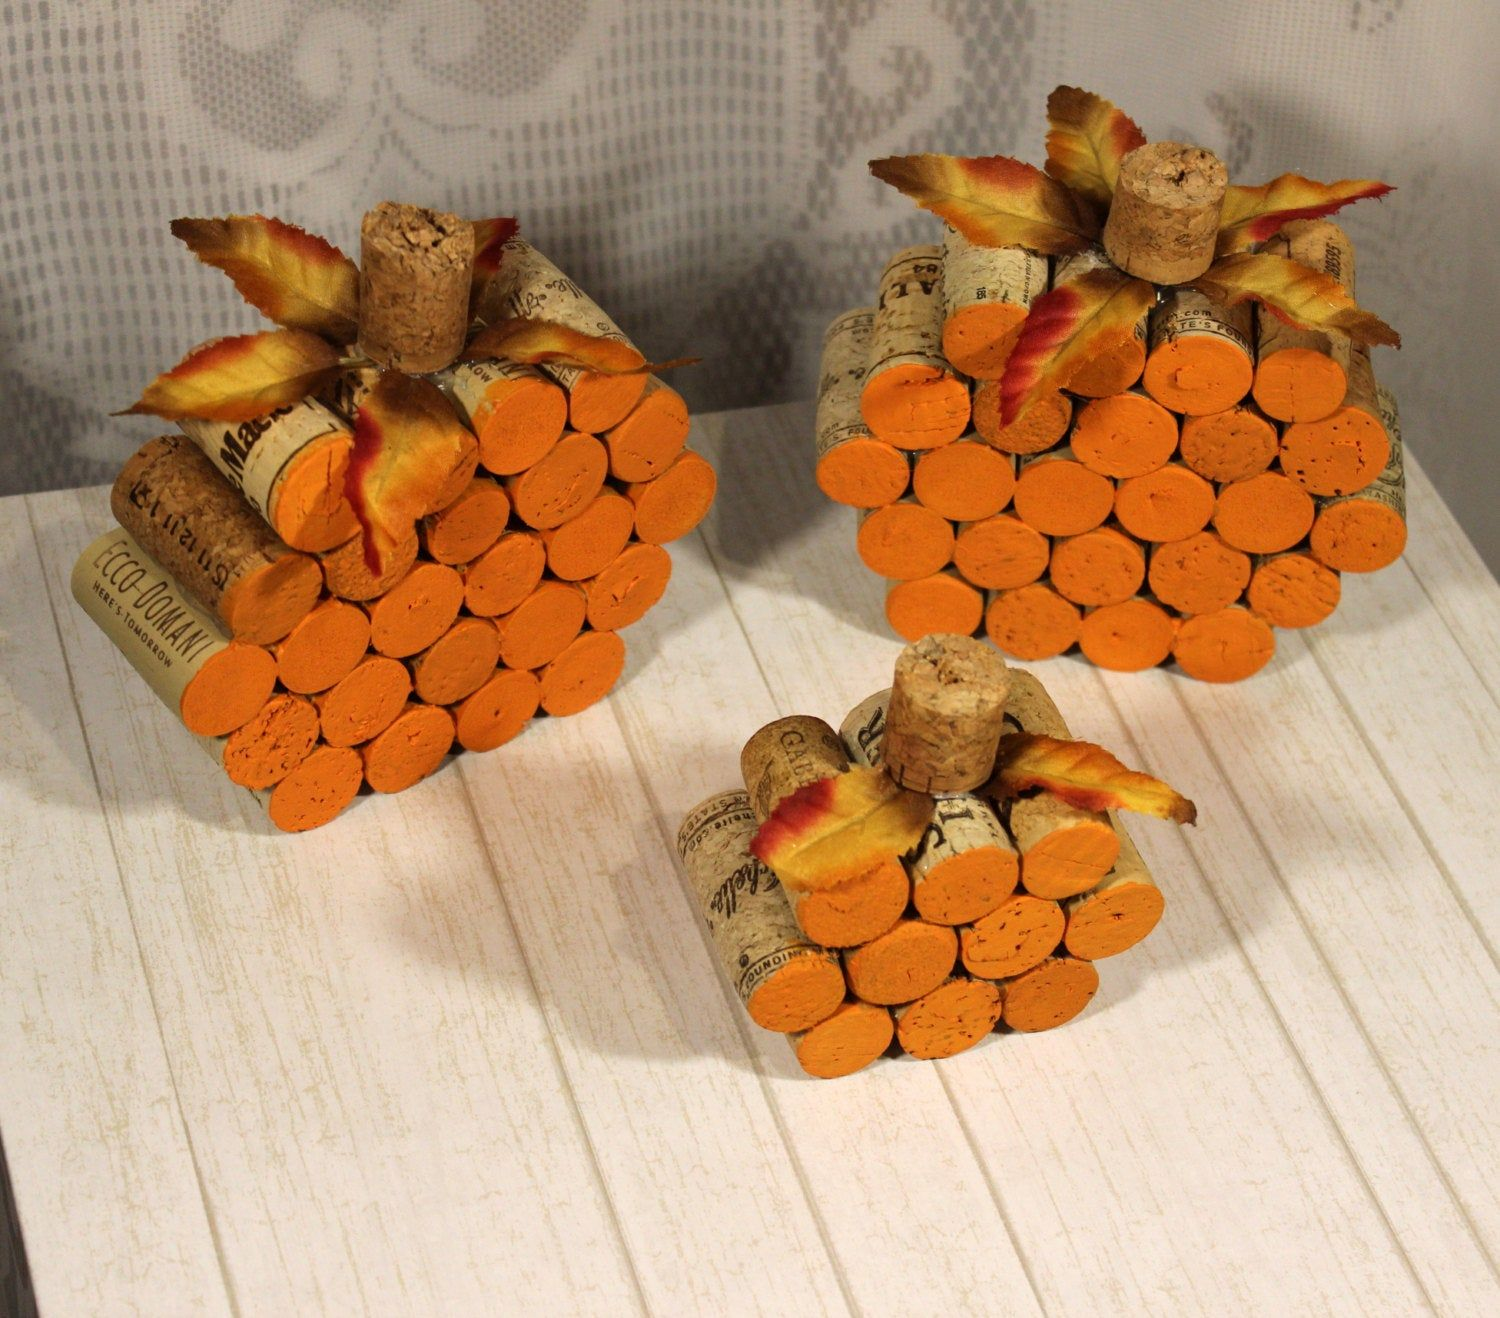 Cork Art Wedding: Rustic Fall Decor/ Pumpkin Decor/ Fall Wedding Decor/Cork